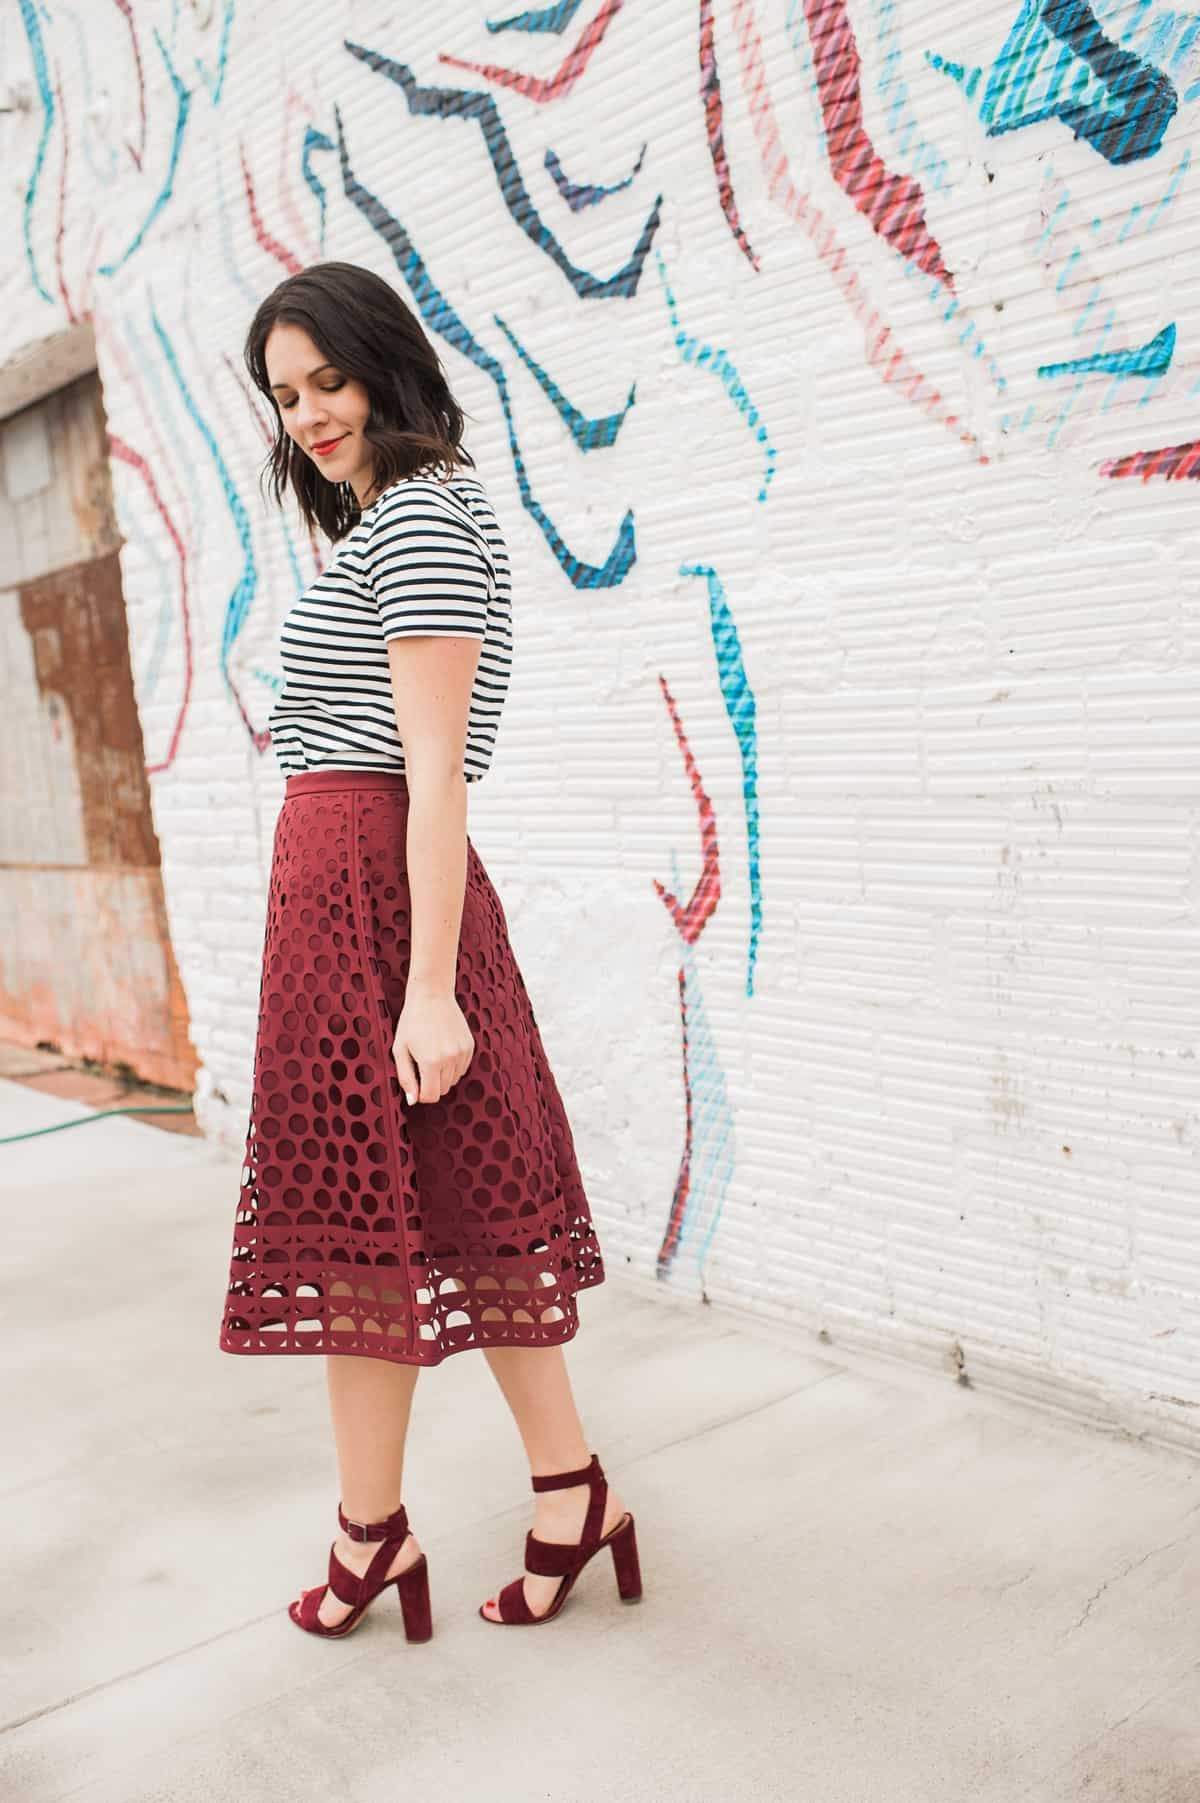 styling a midi skirt for summer my style vita